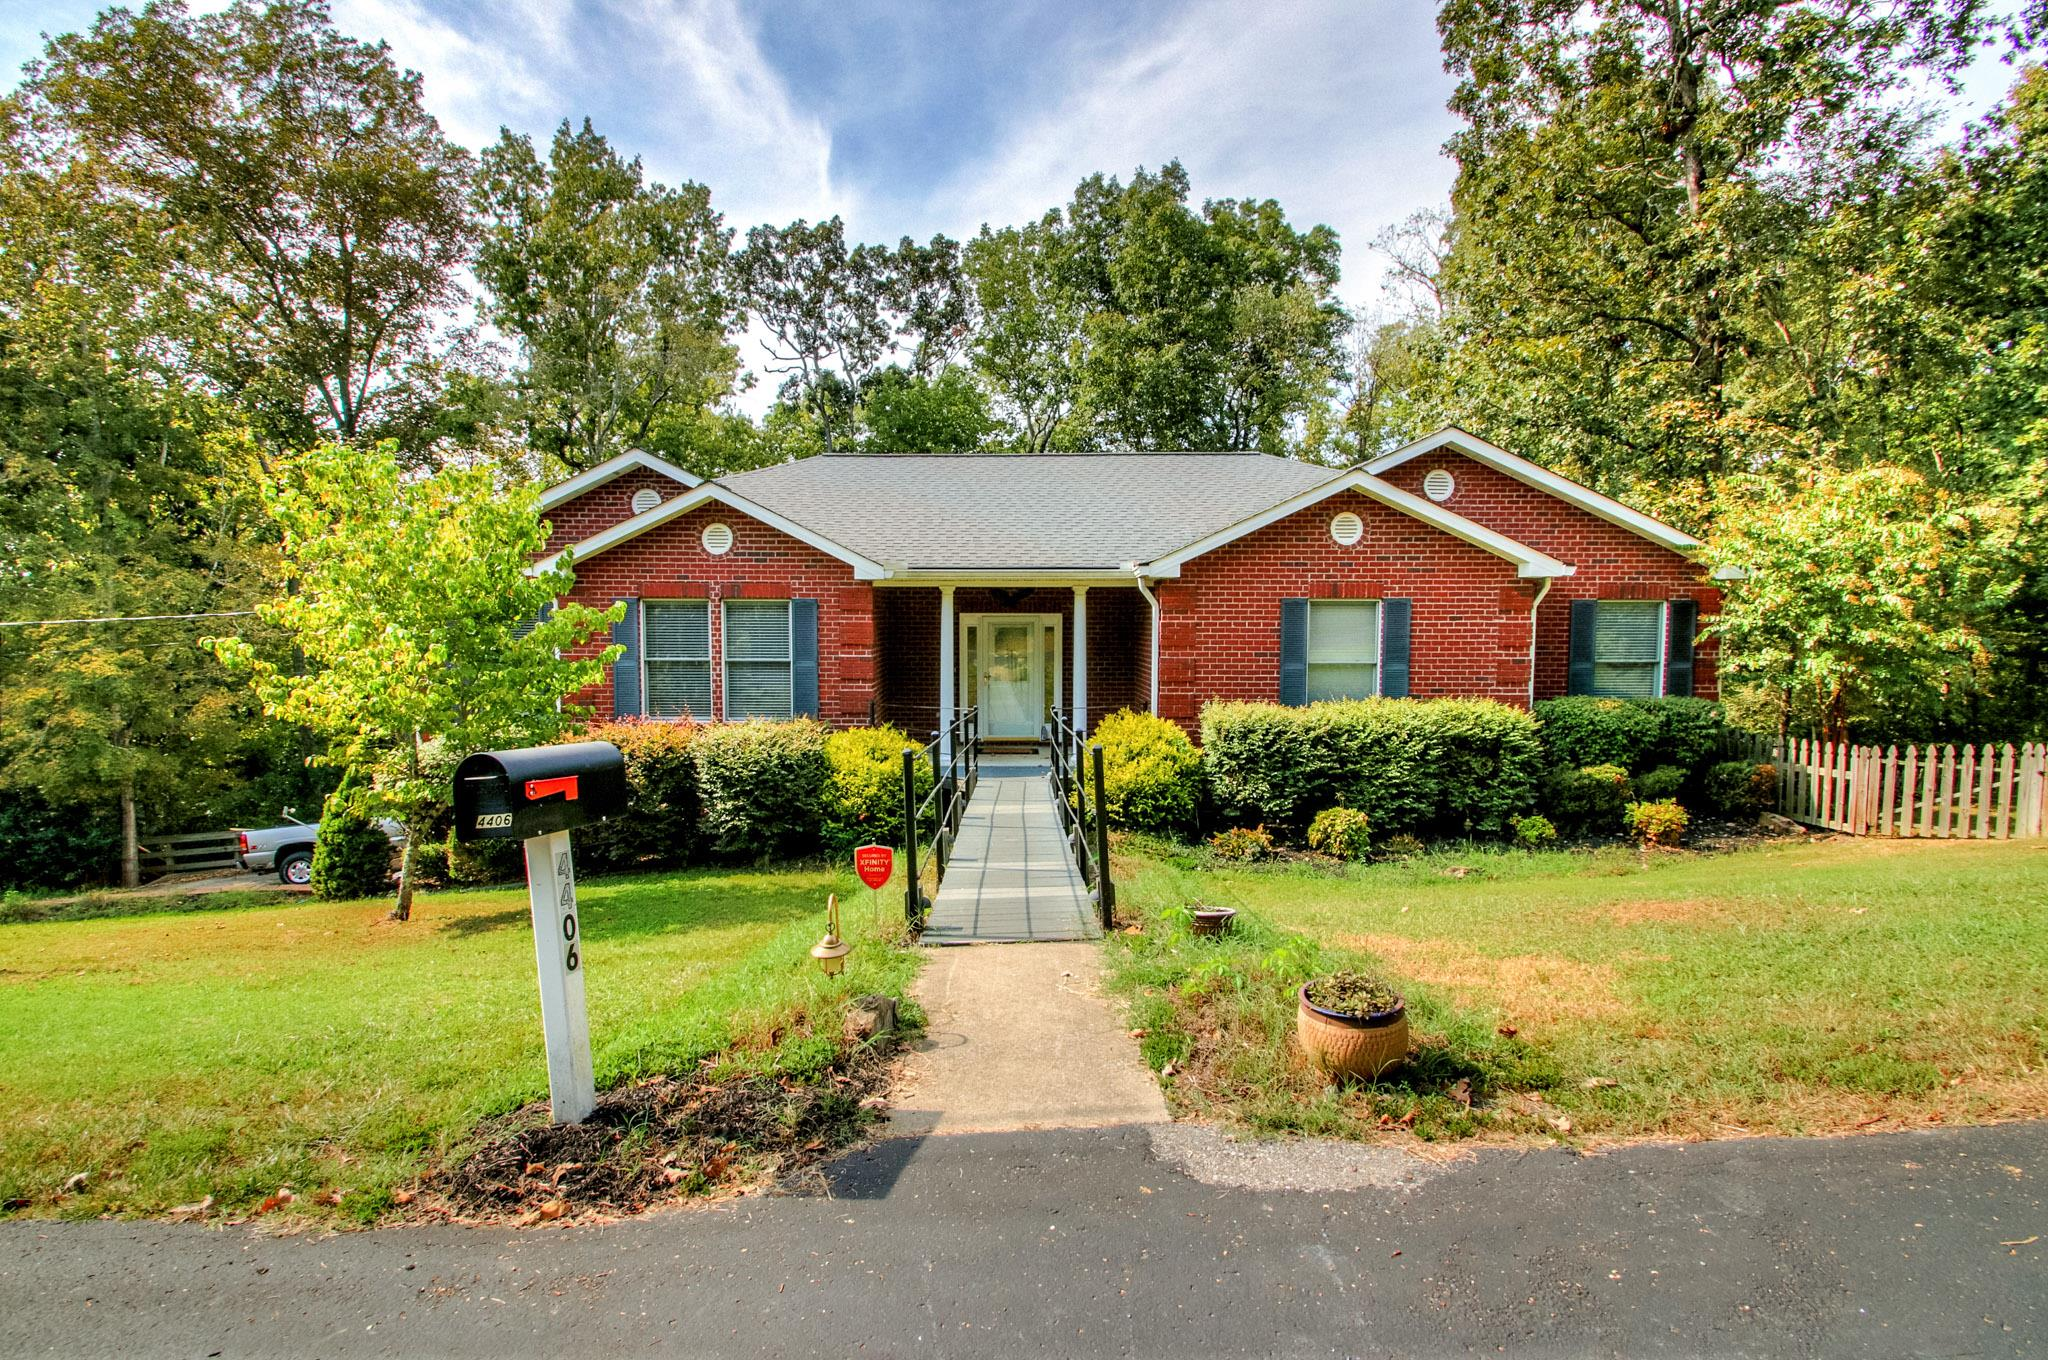 4406 Tanglewood Rd, Pegram, TN 37143 - Pegram, TN real estate listing